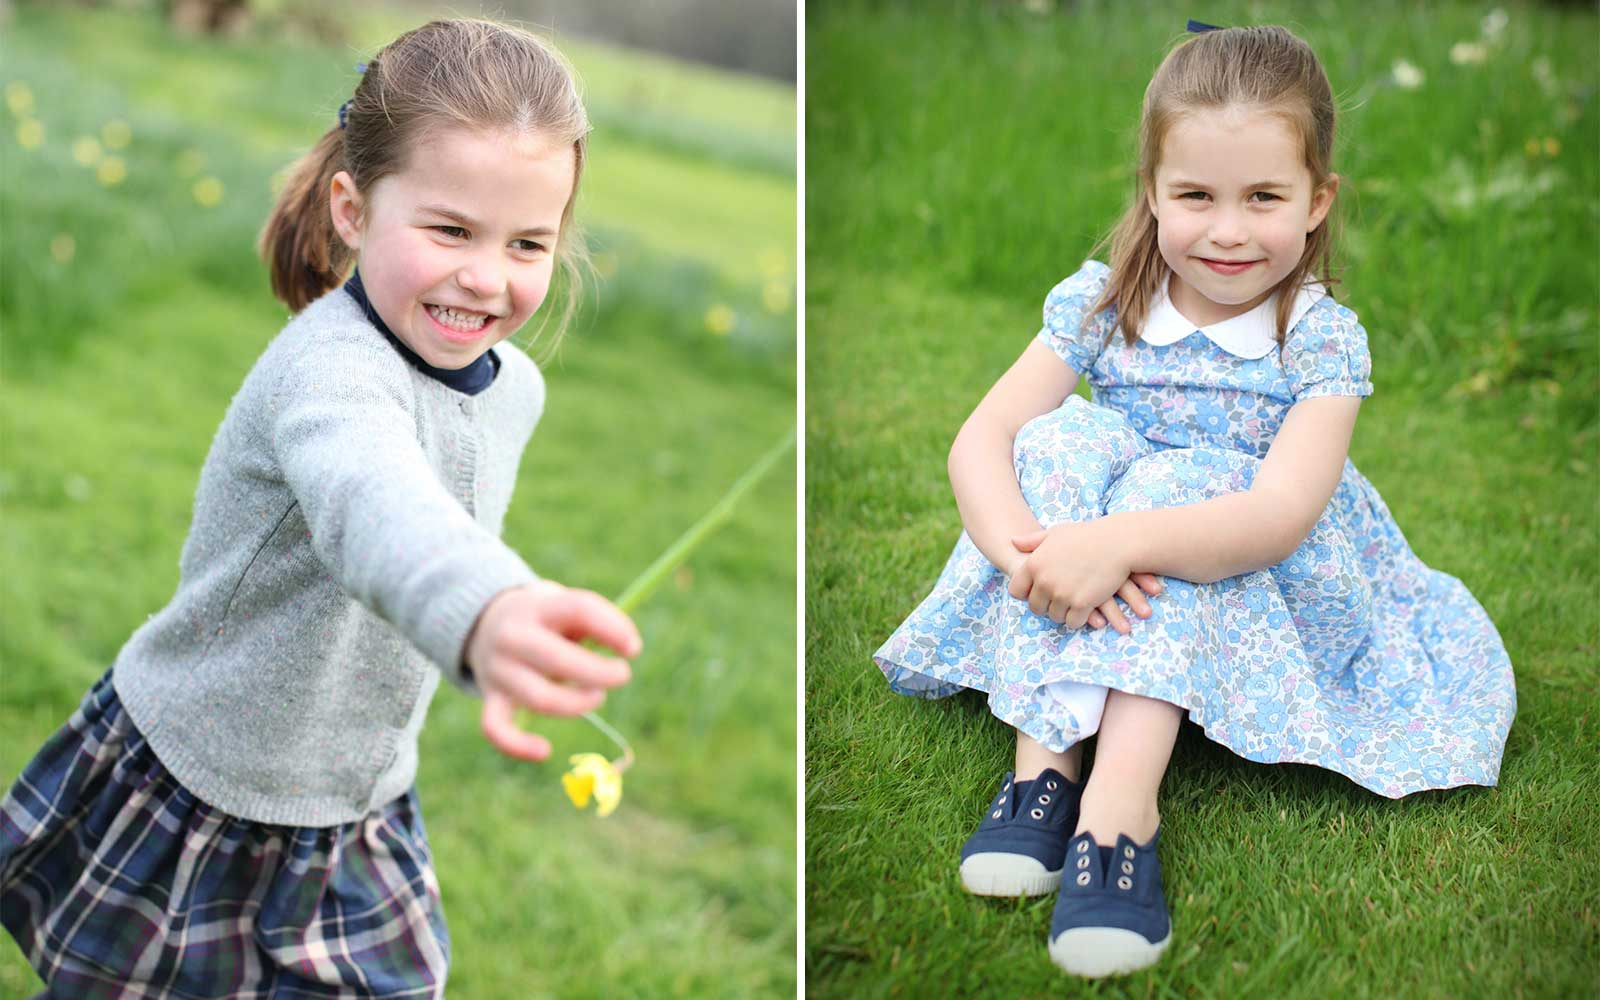 Princess Charlotte Turns 4 Today — See Her Adorable Birthday Photos Taken by Kate Middleton